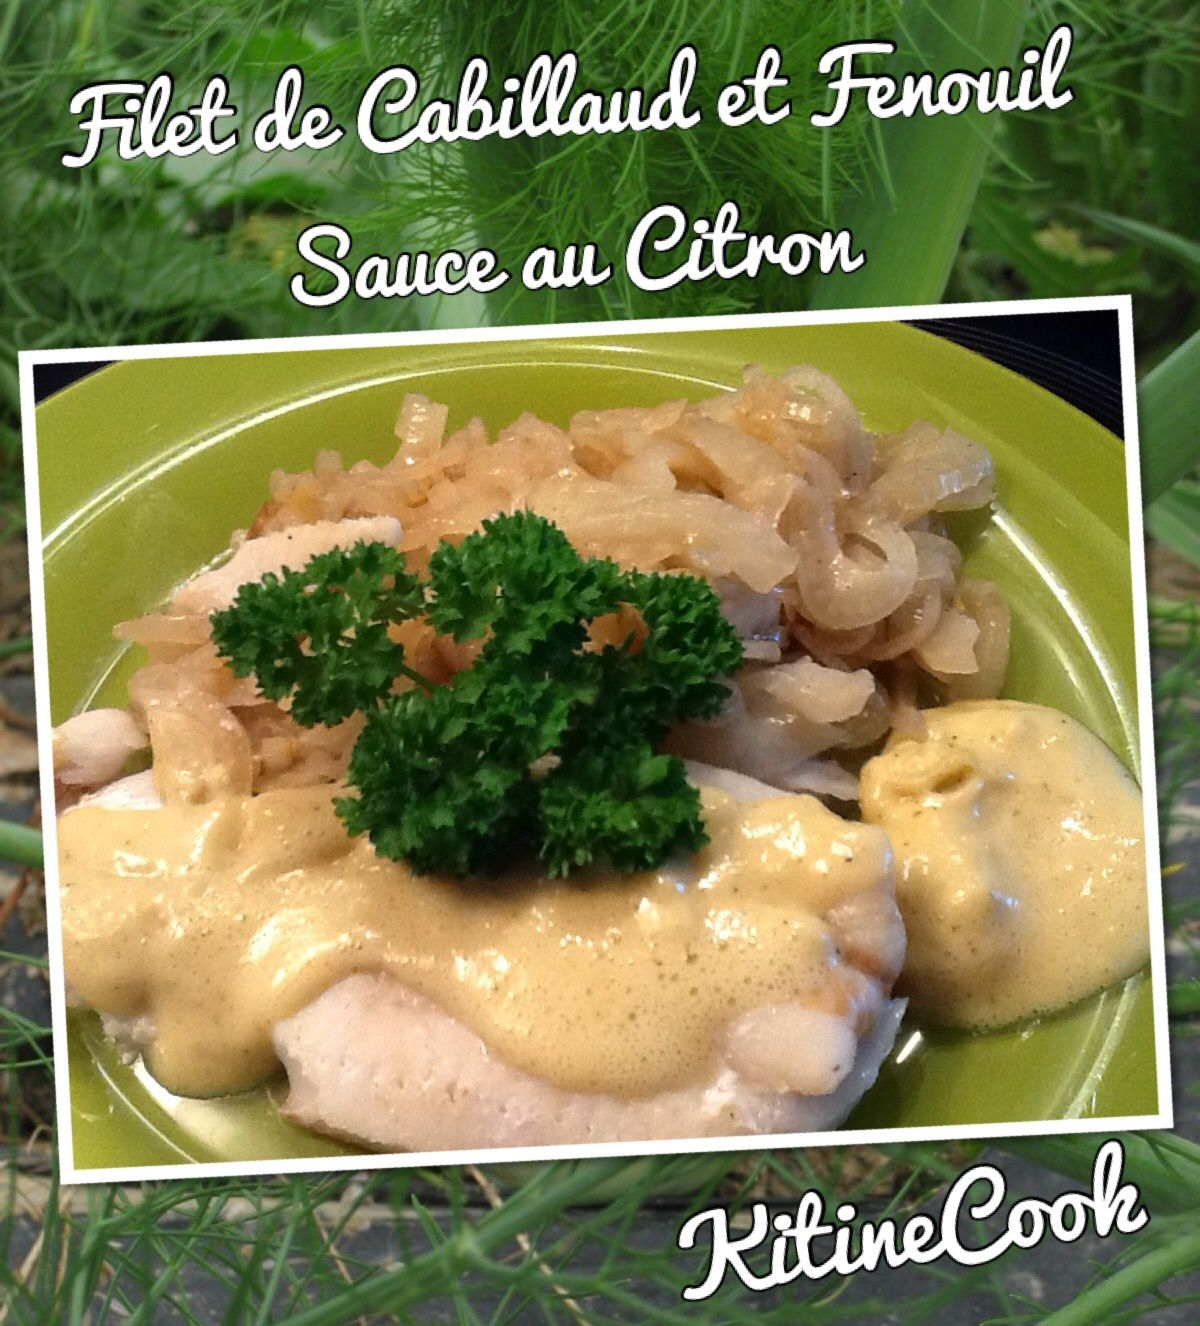 Filets de cabillaud au fenouil sauce citron kitinecook for Cabillaud fenouil